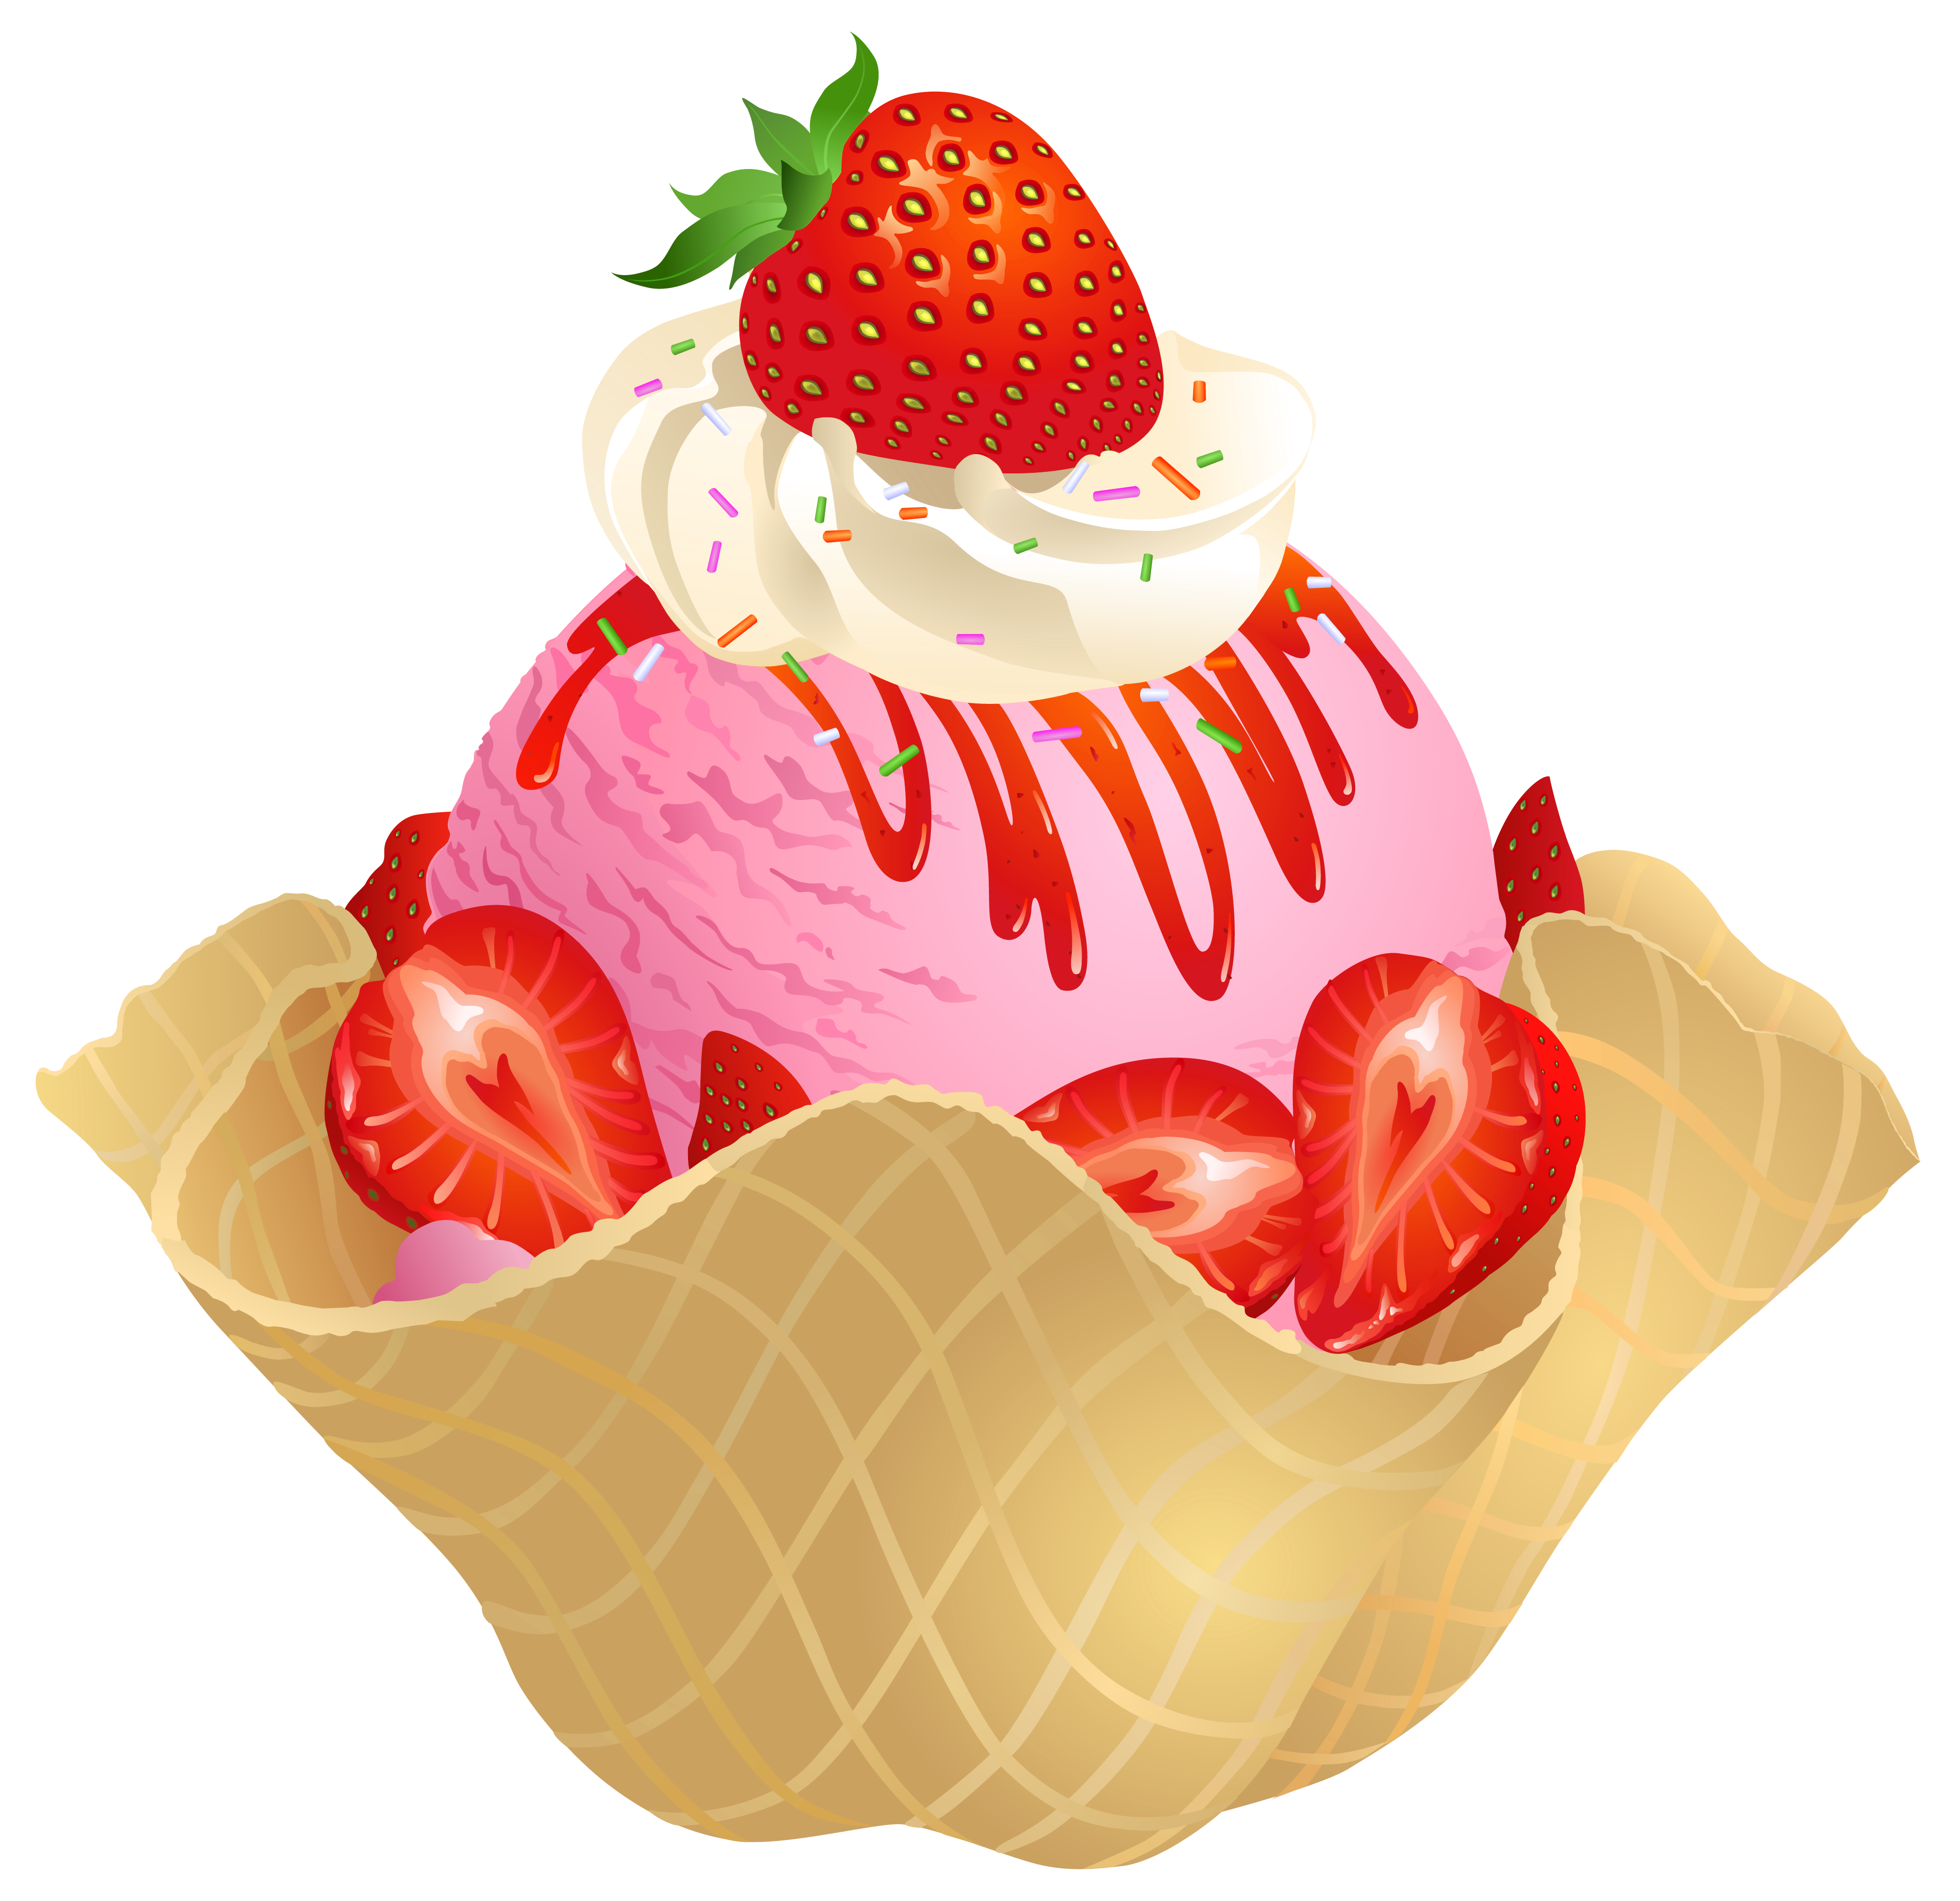 svg free stock Sundae clipart color. Transparent strawberry ice cream